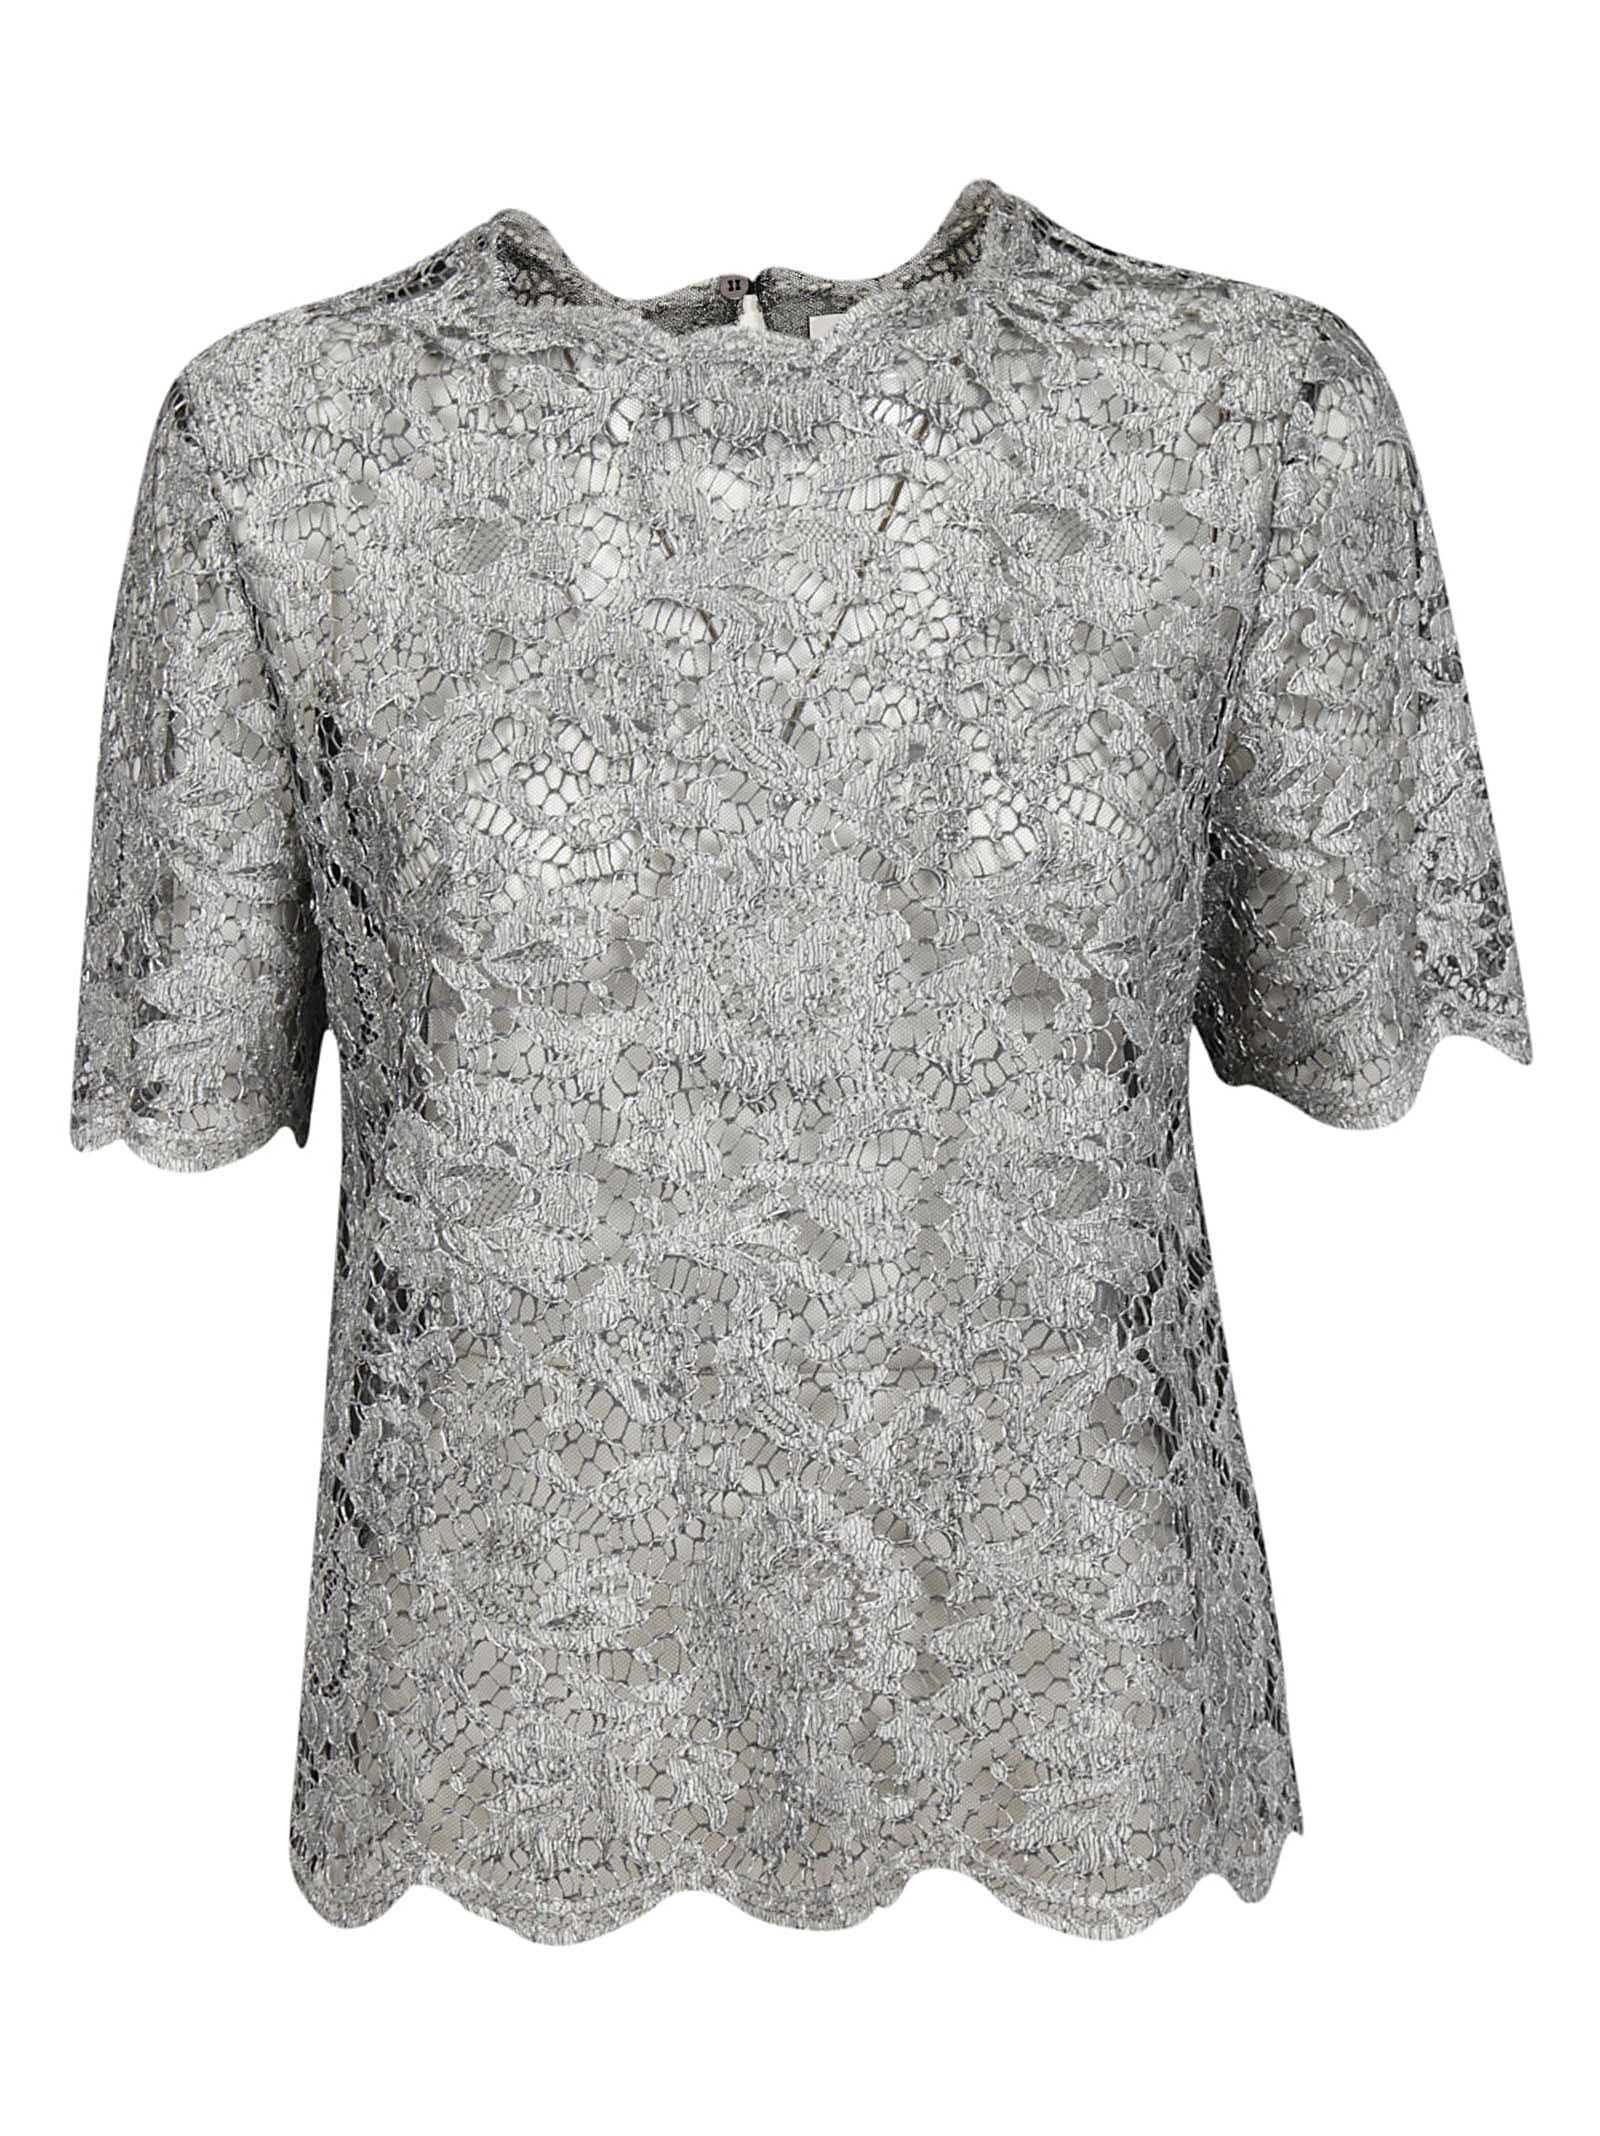 Valentino Scalloped Lace T-shirt ...